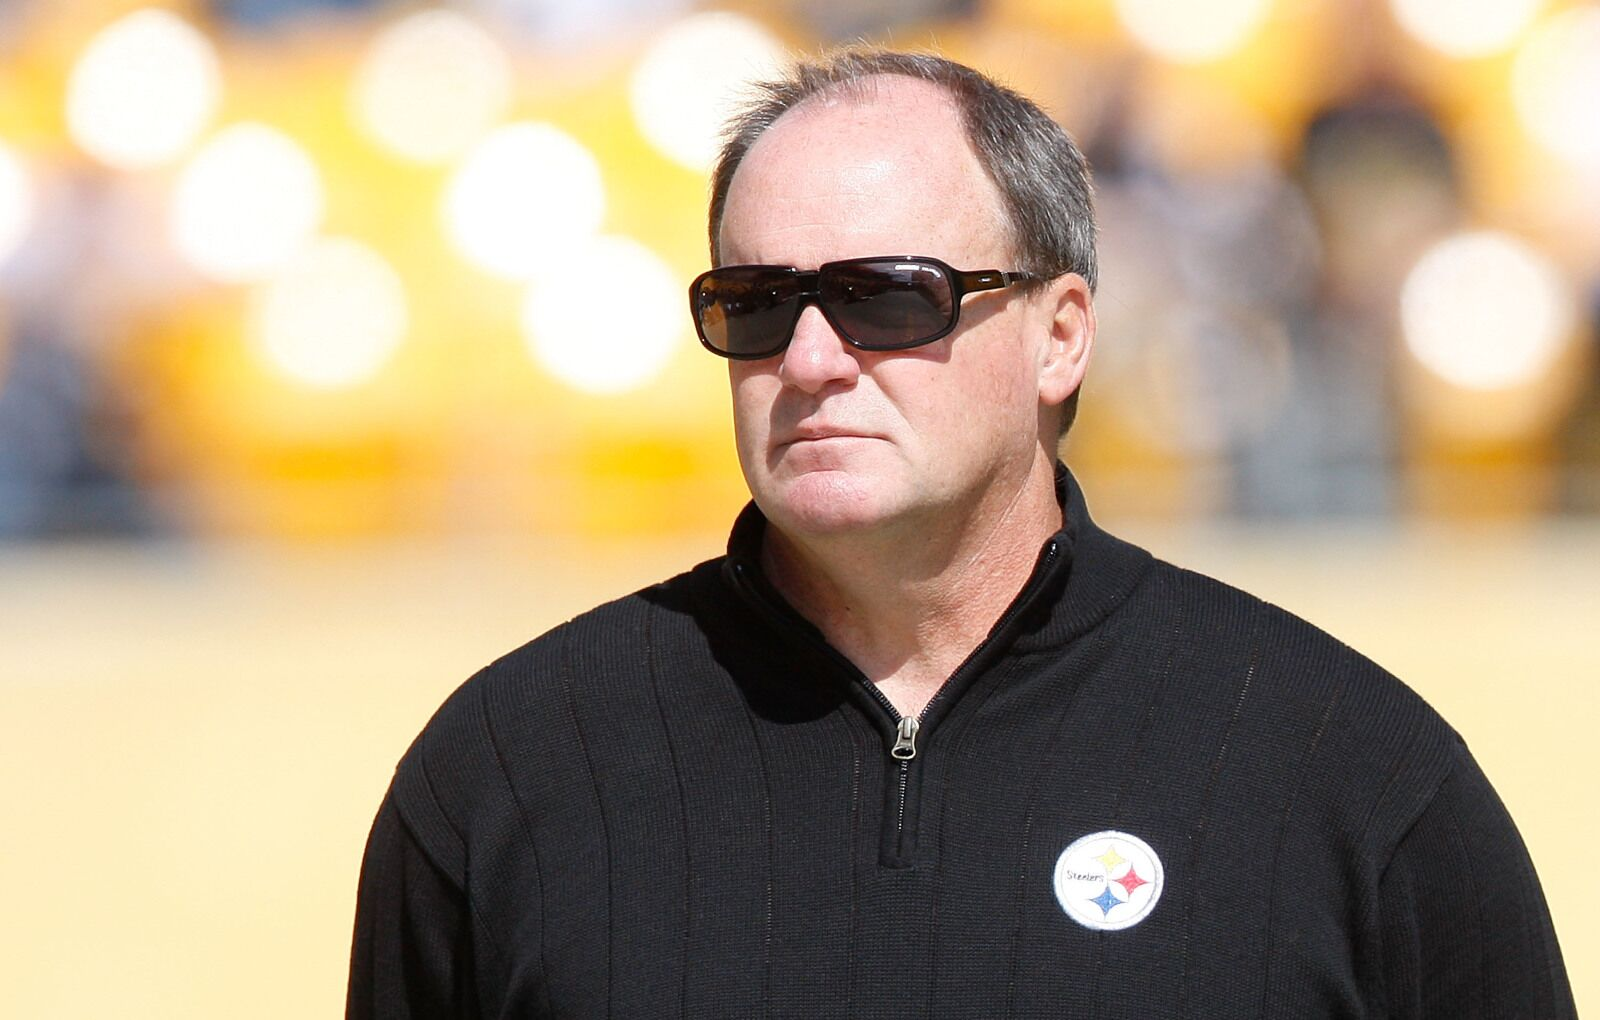 Should Steelers GM Kevin Colbert receive a contract extension?